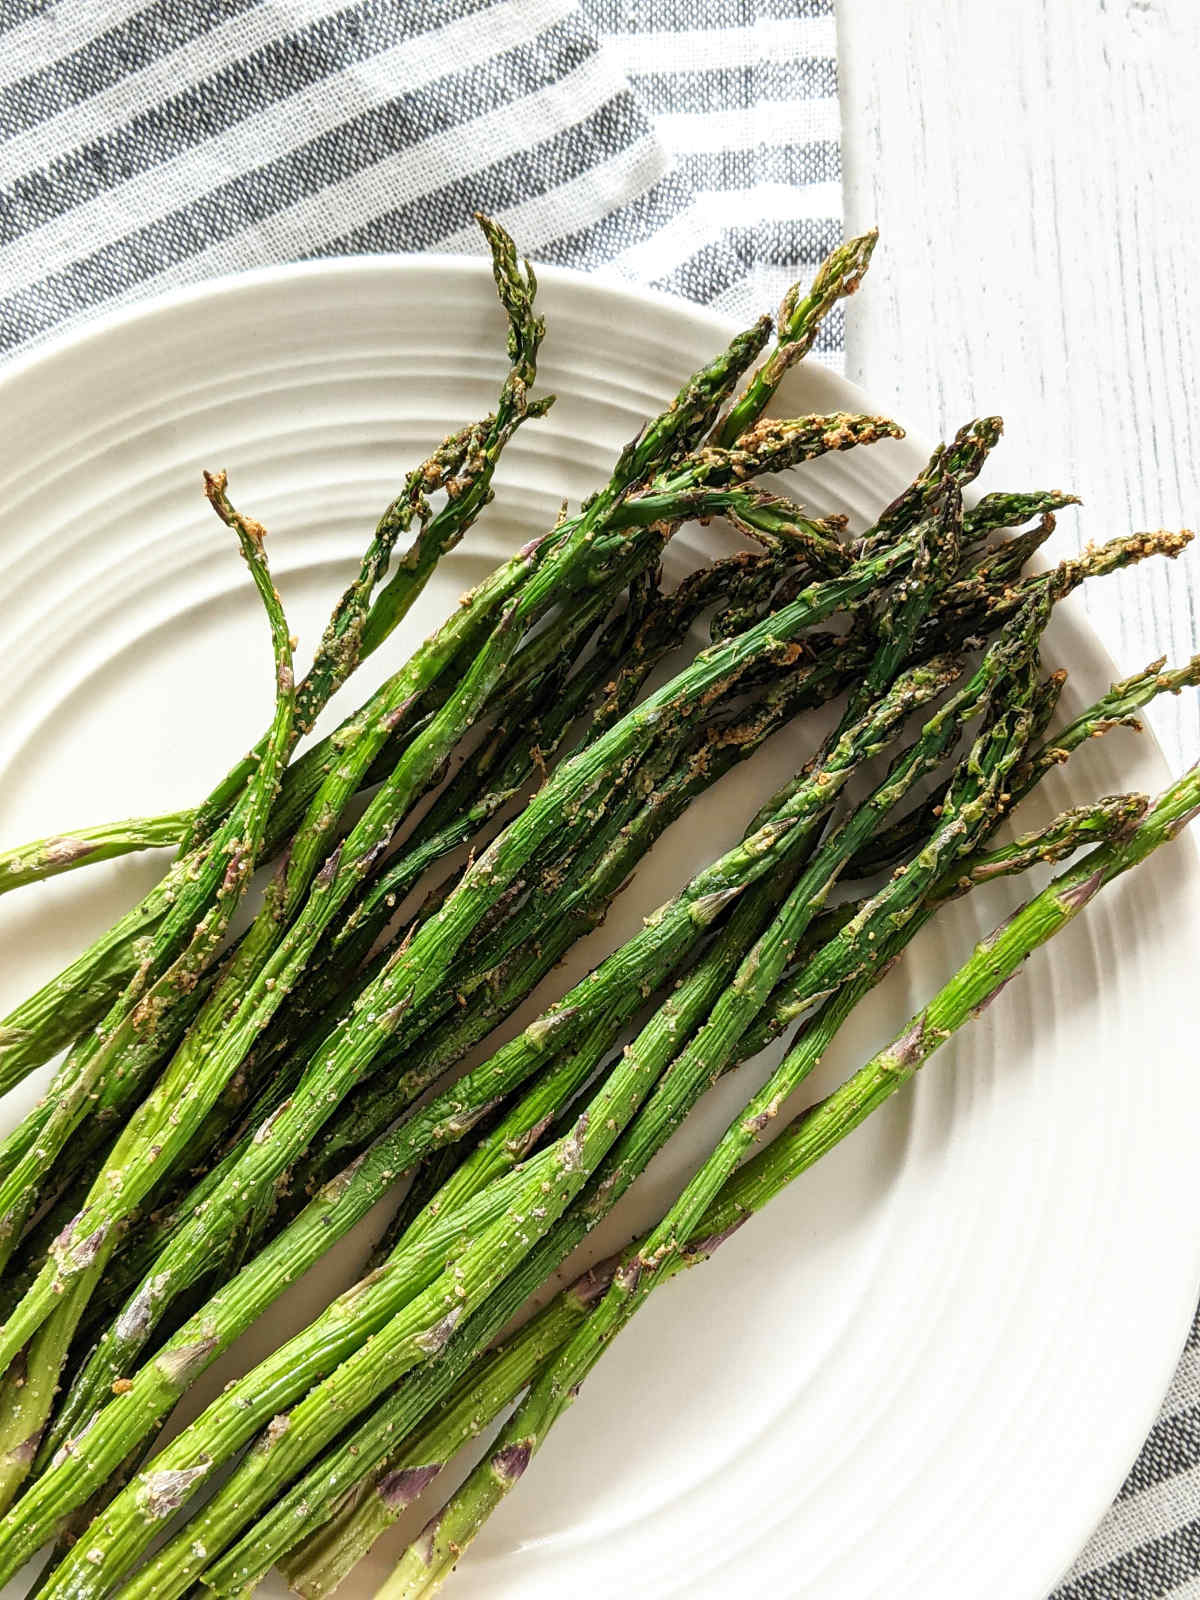 Cooked asparagus on a plate